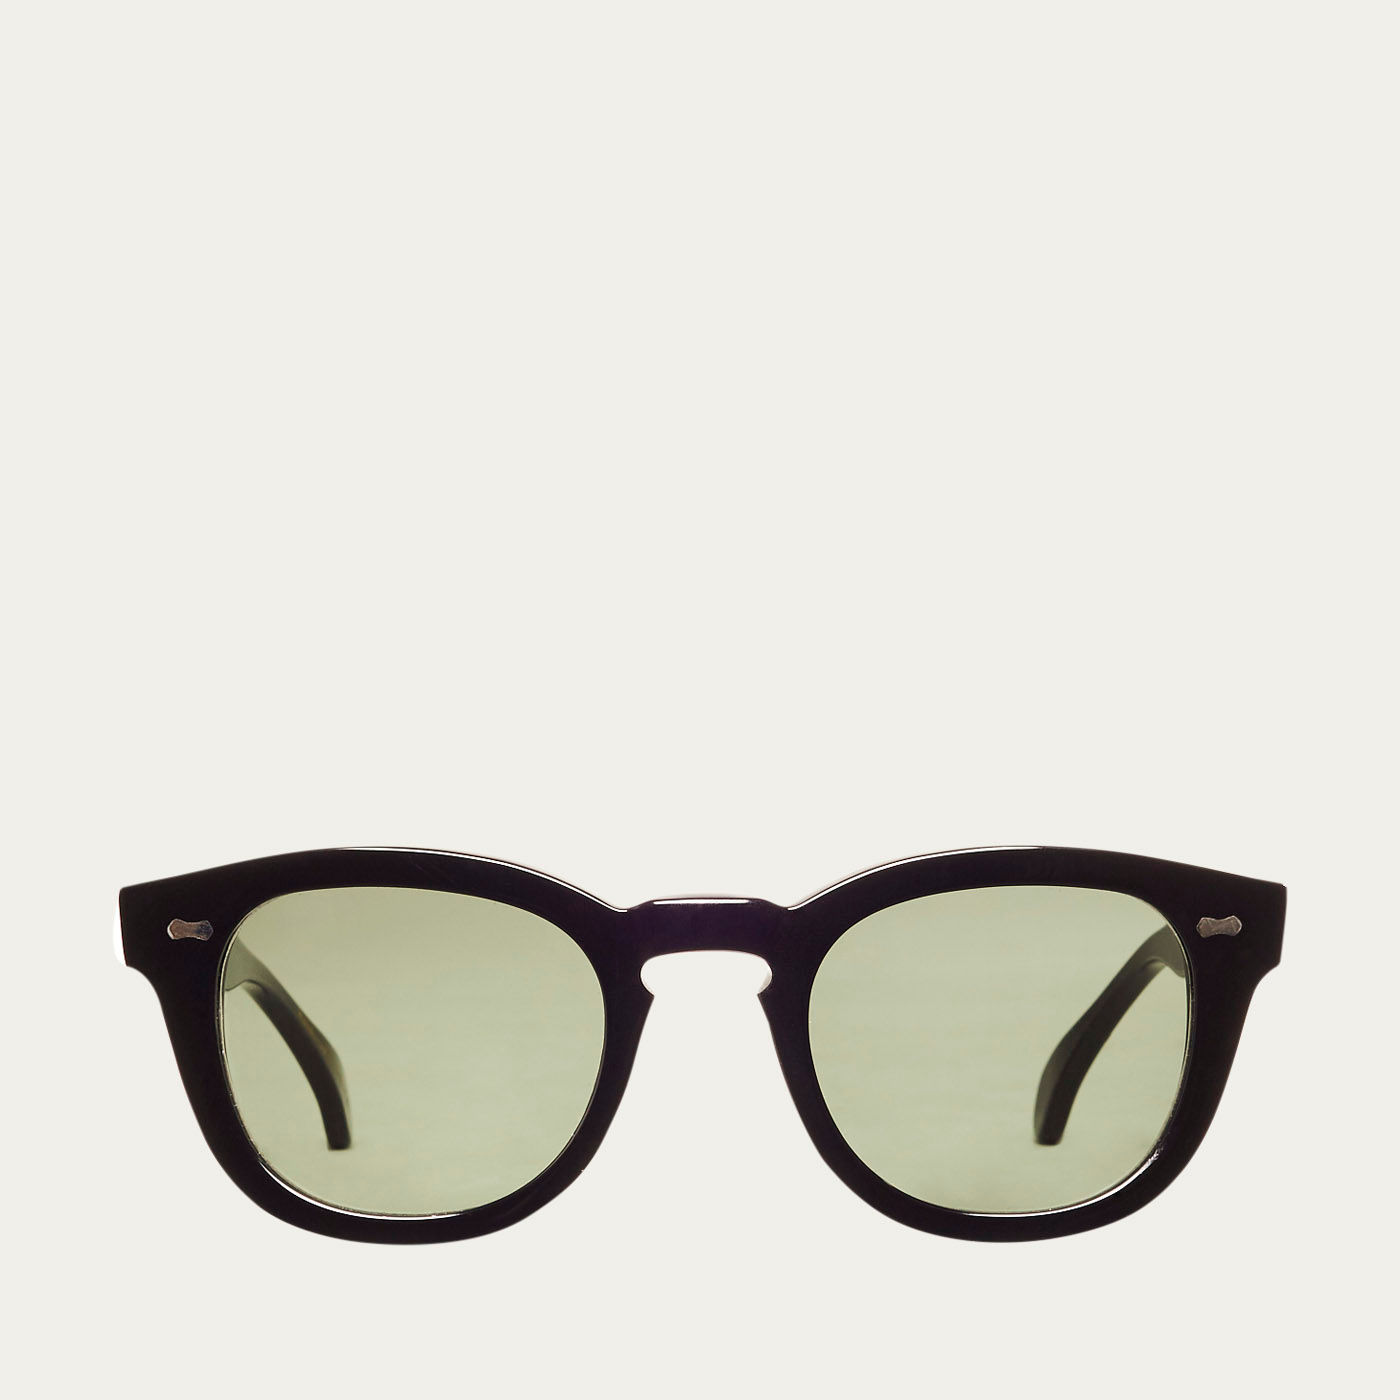 Donegal Black / Bottle Green  Sunglasses | Bombinate